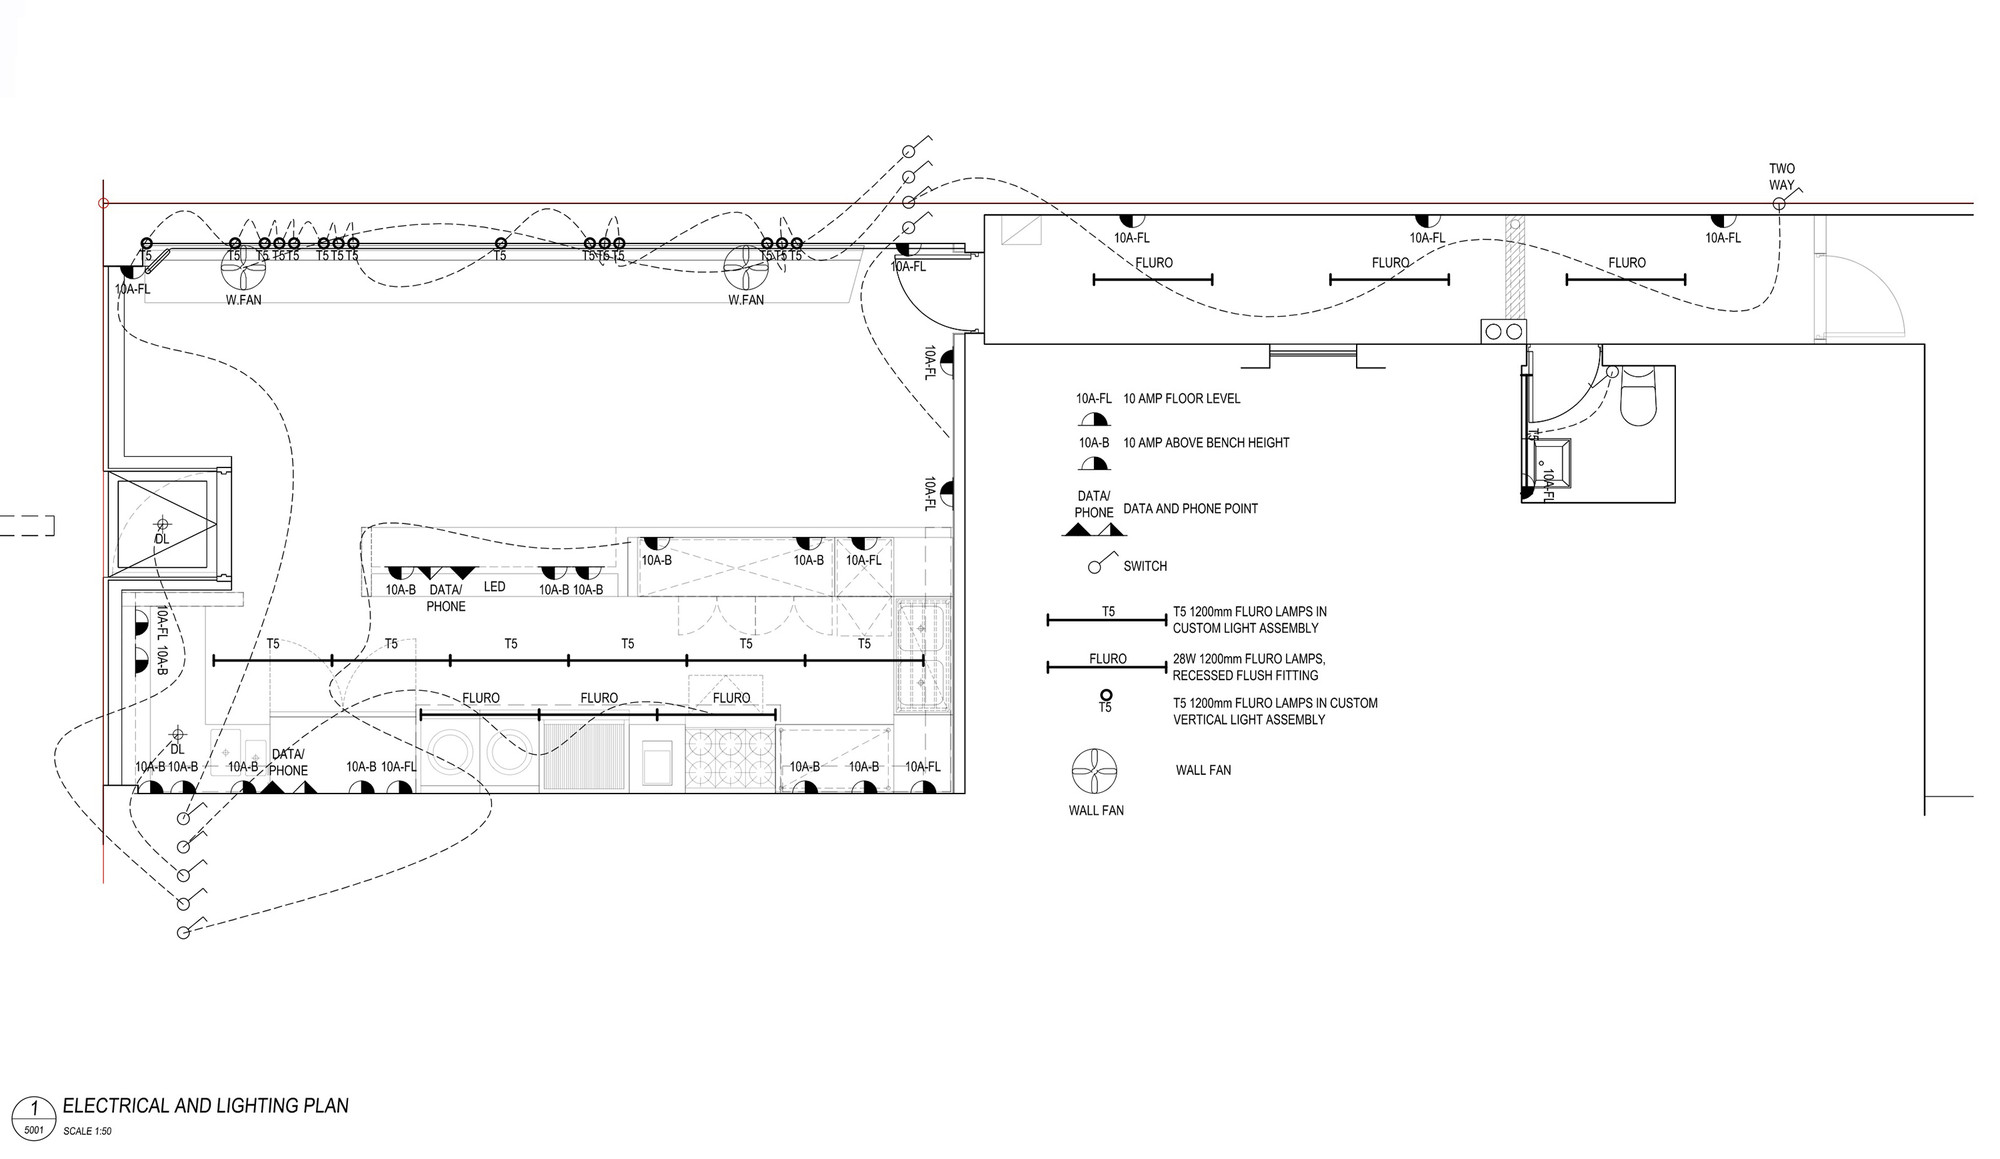 medium resolution of vietnamese restaurant phamily kitchen electrical and lighting plan